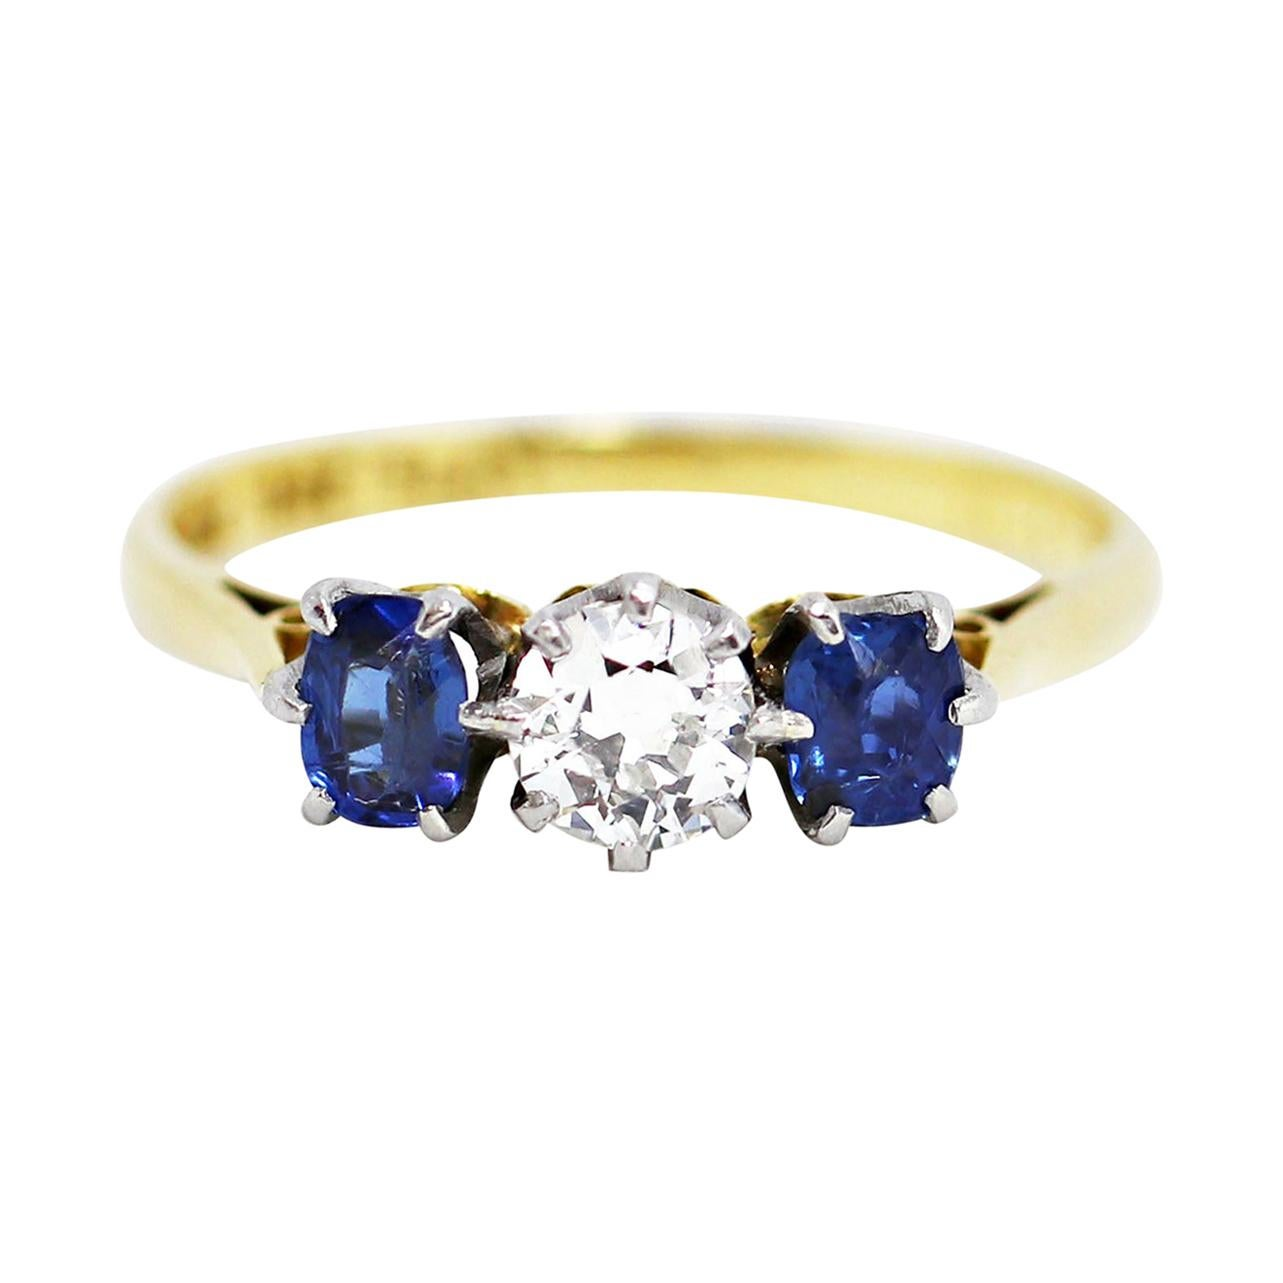 Antique Sapphire and Old Cut Diamond 3-Stone 18ct Gold and Platinum Ring, c.1920